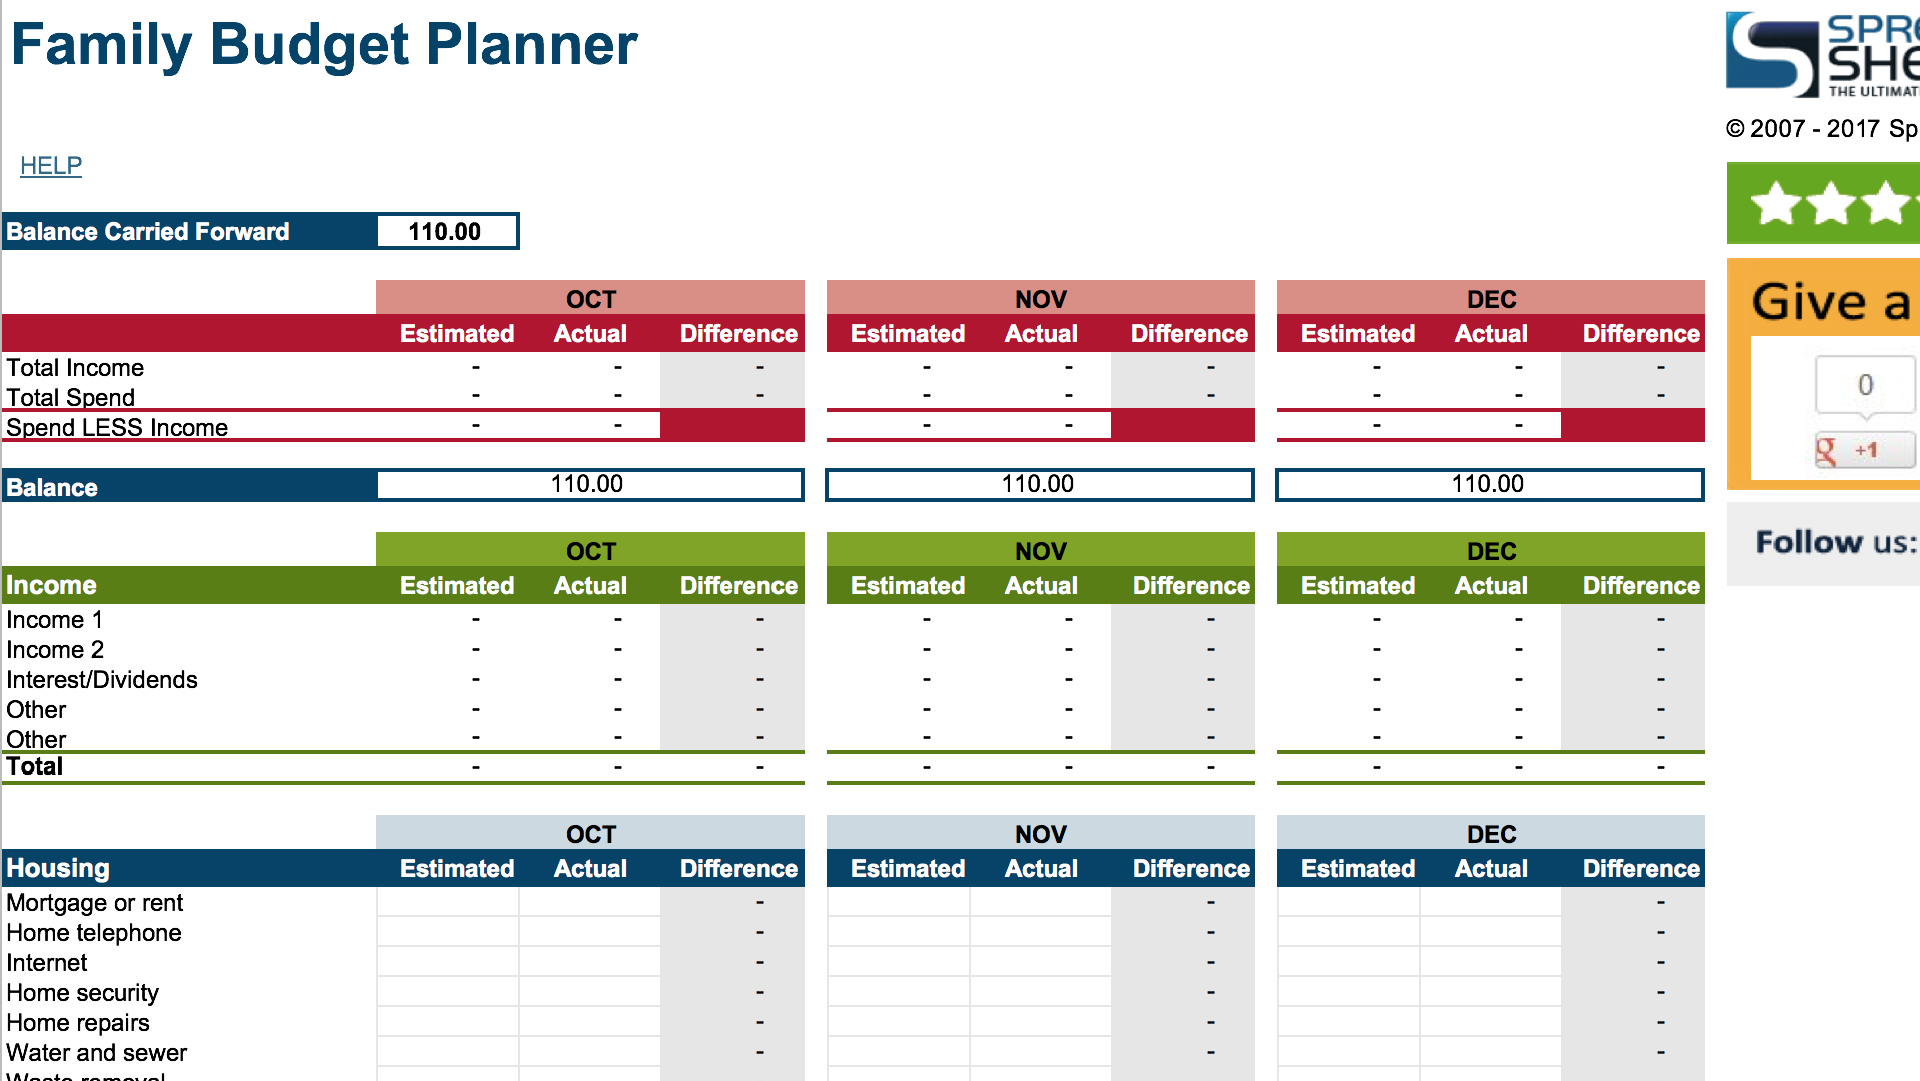 15 Easy-To-Use Budget Templates | Gobankingrates for Household Budget Calculator Spreadsheet